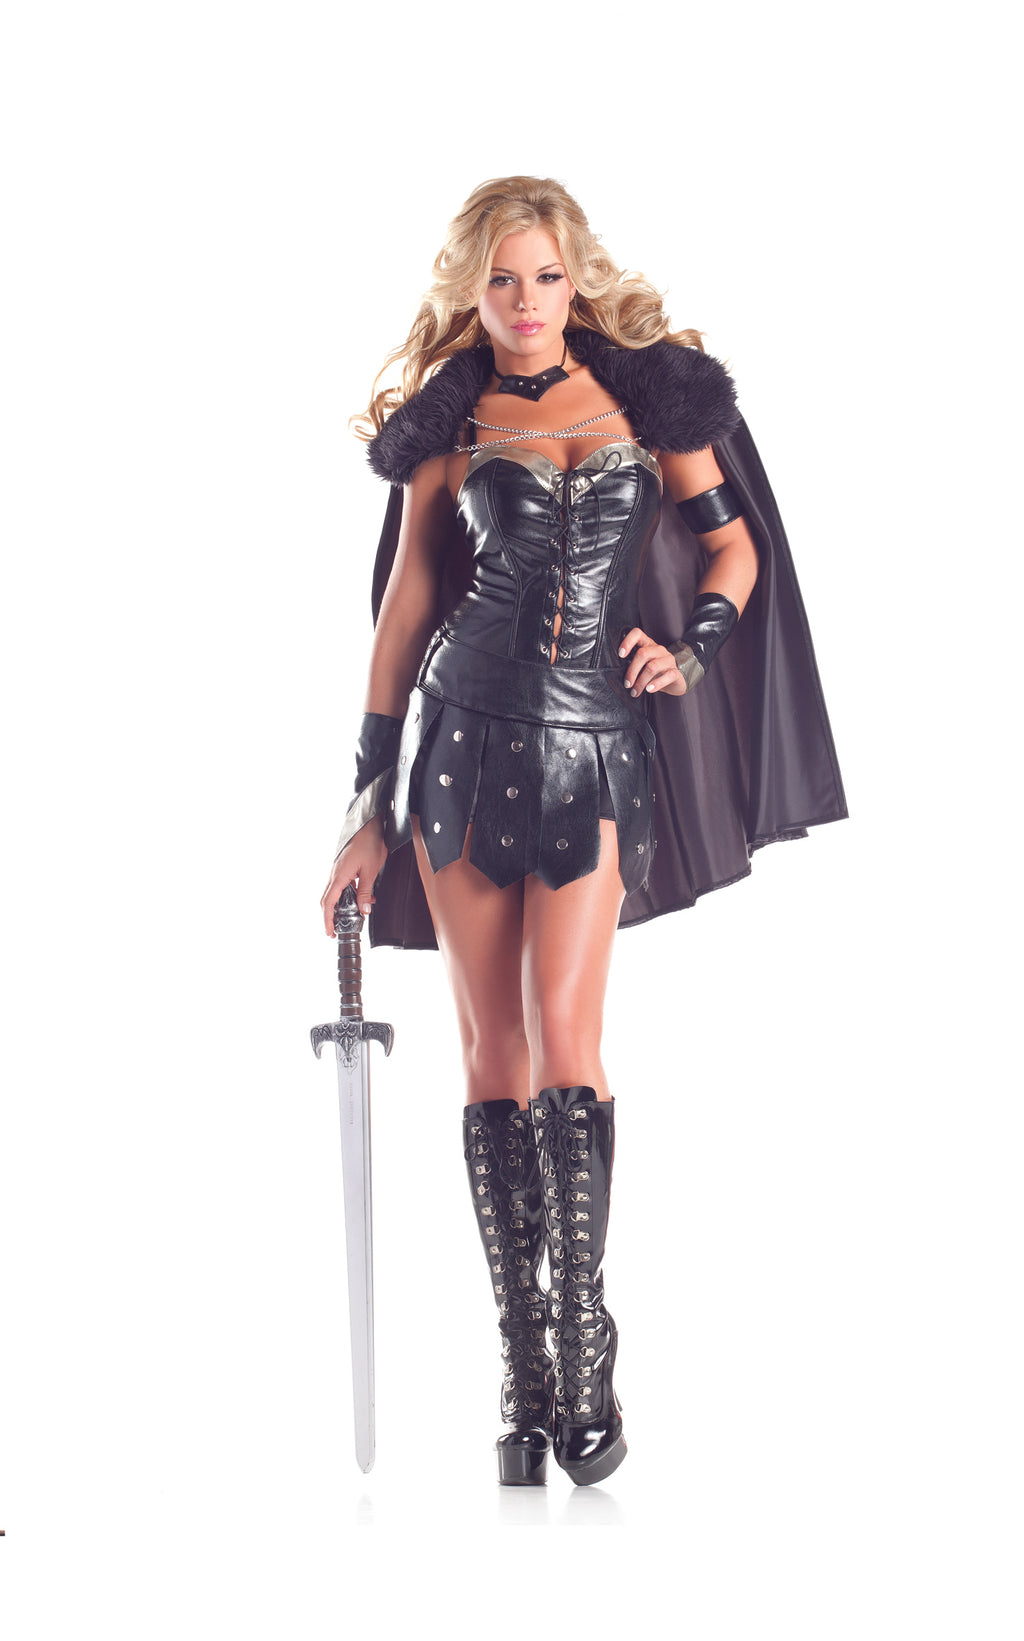 Adult-Women's-6-Piece-Sexy-Warrior-Princess-Halloween-Party-Costume-